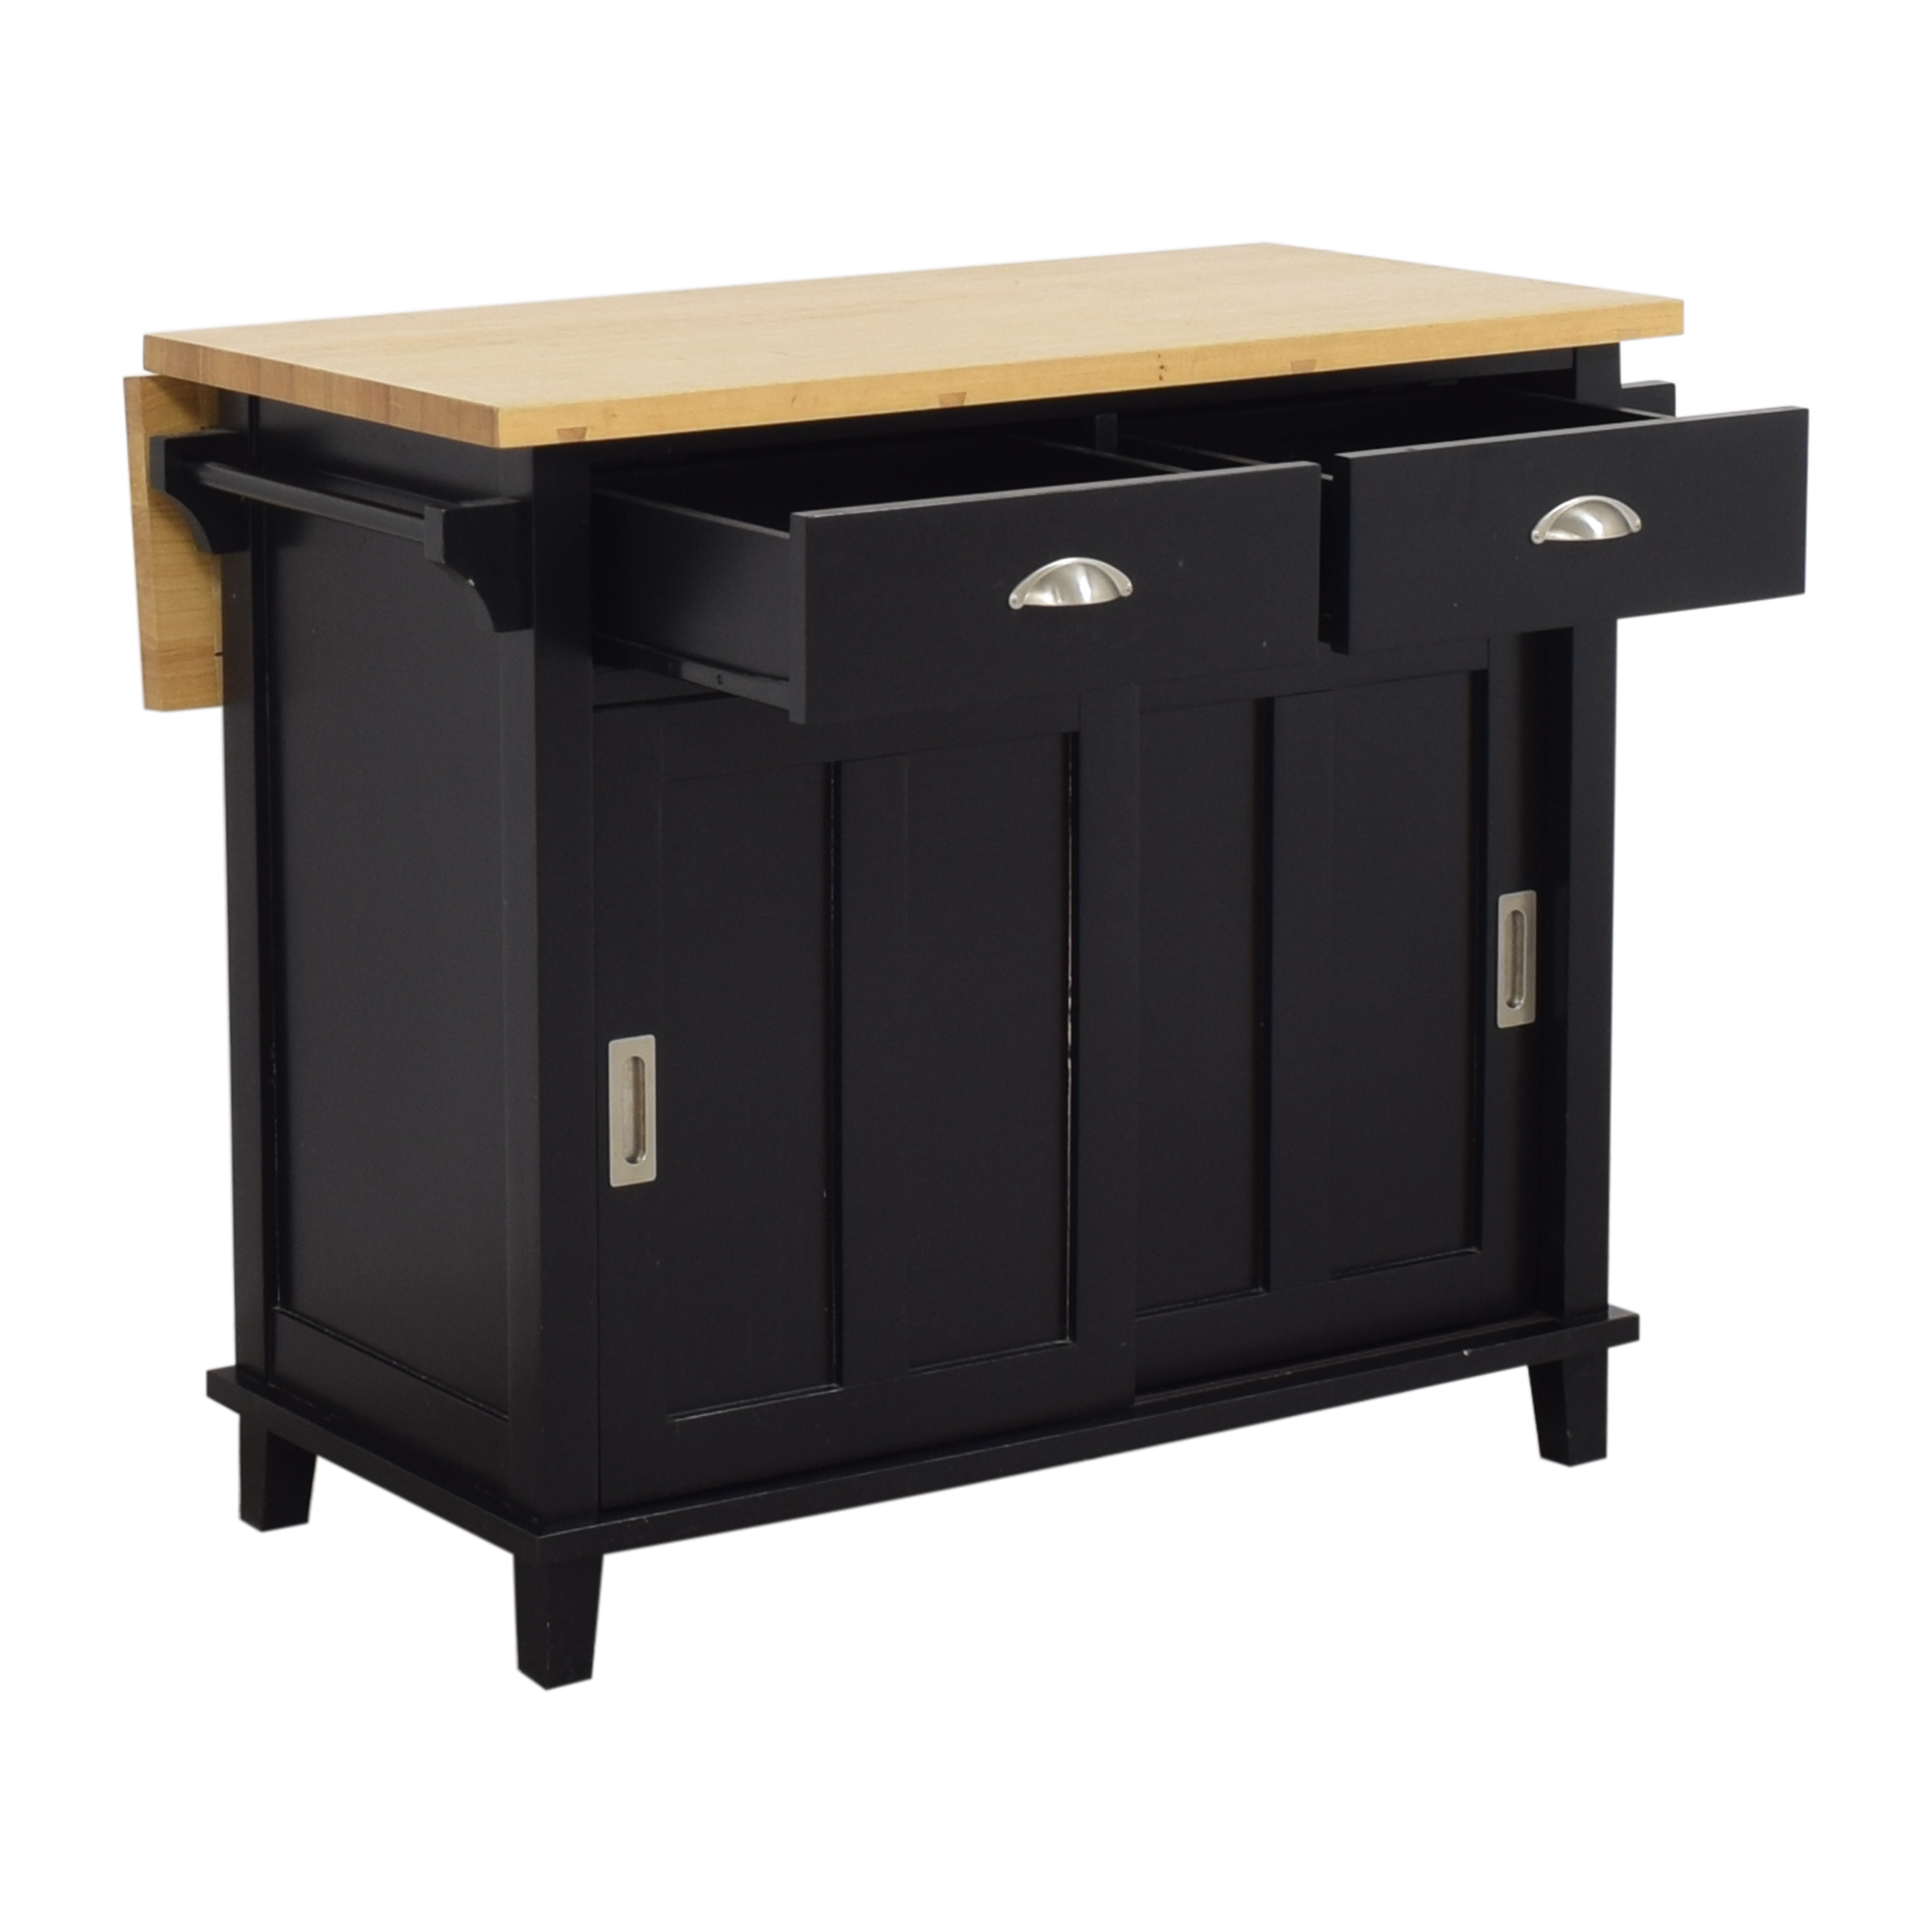 buy Crate & Barrel Belmont Kitchen Island Crate & Barrel Utility Tables